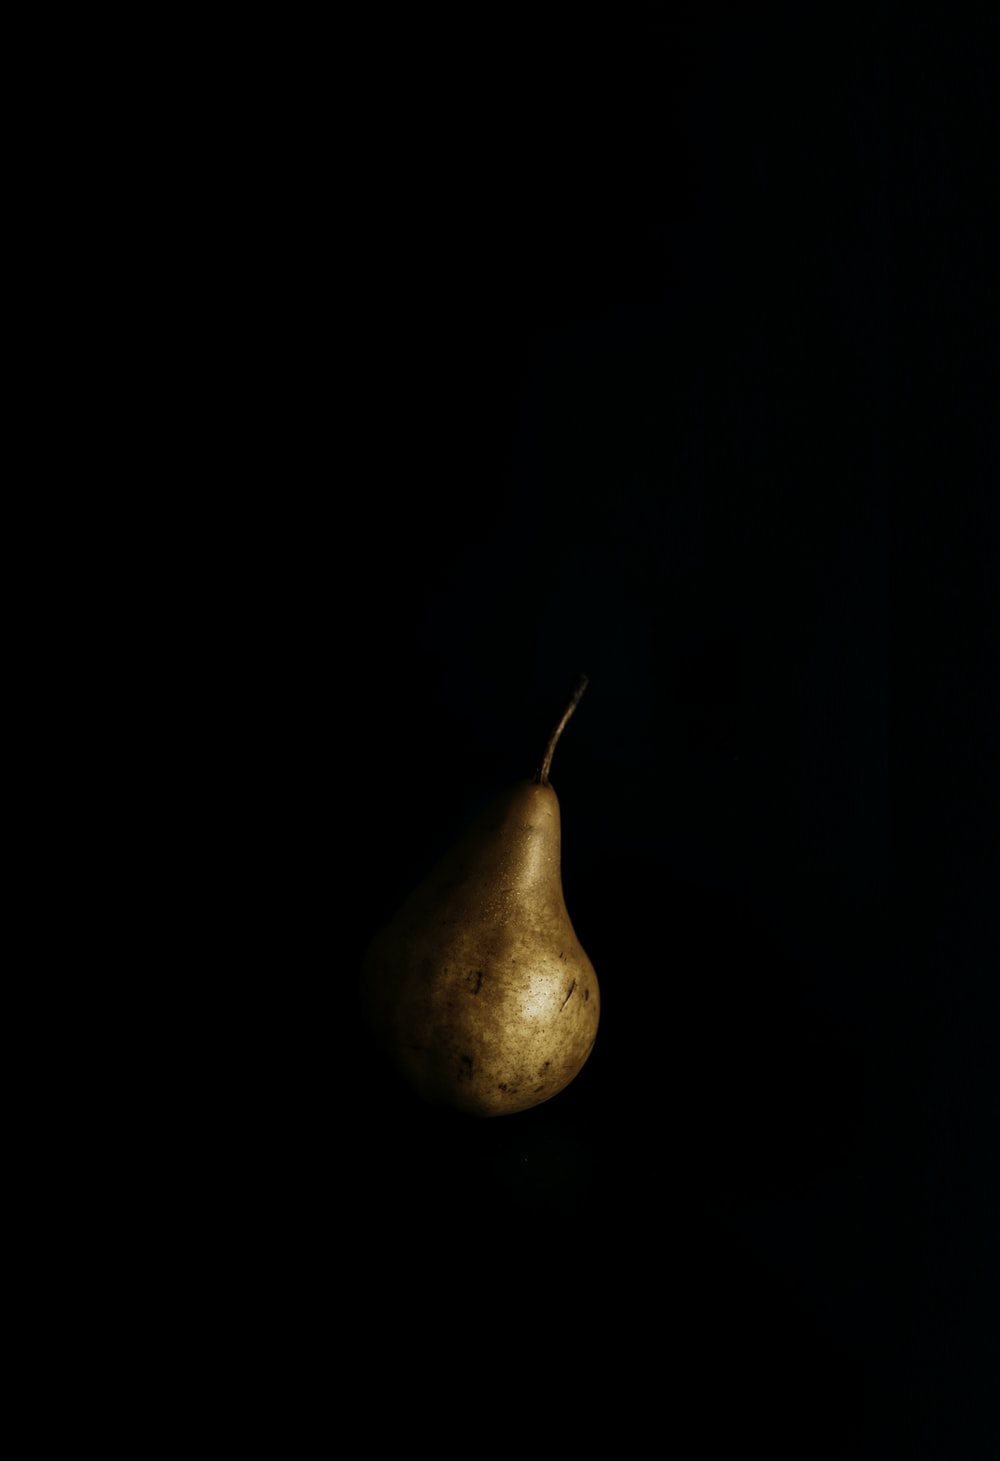 brown and beige fruit with black background